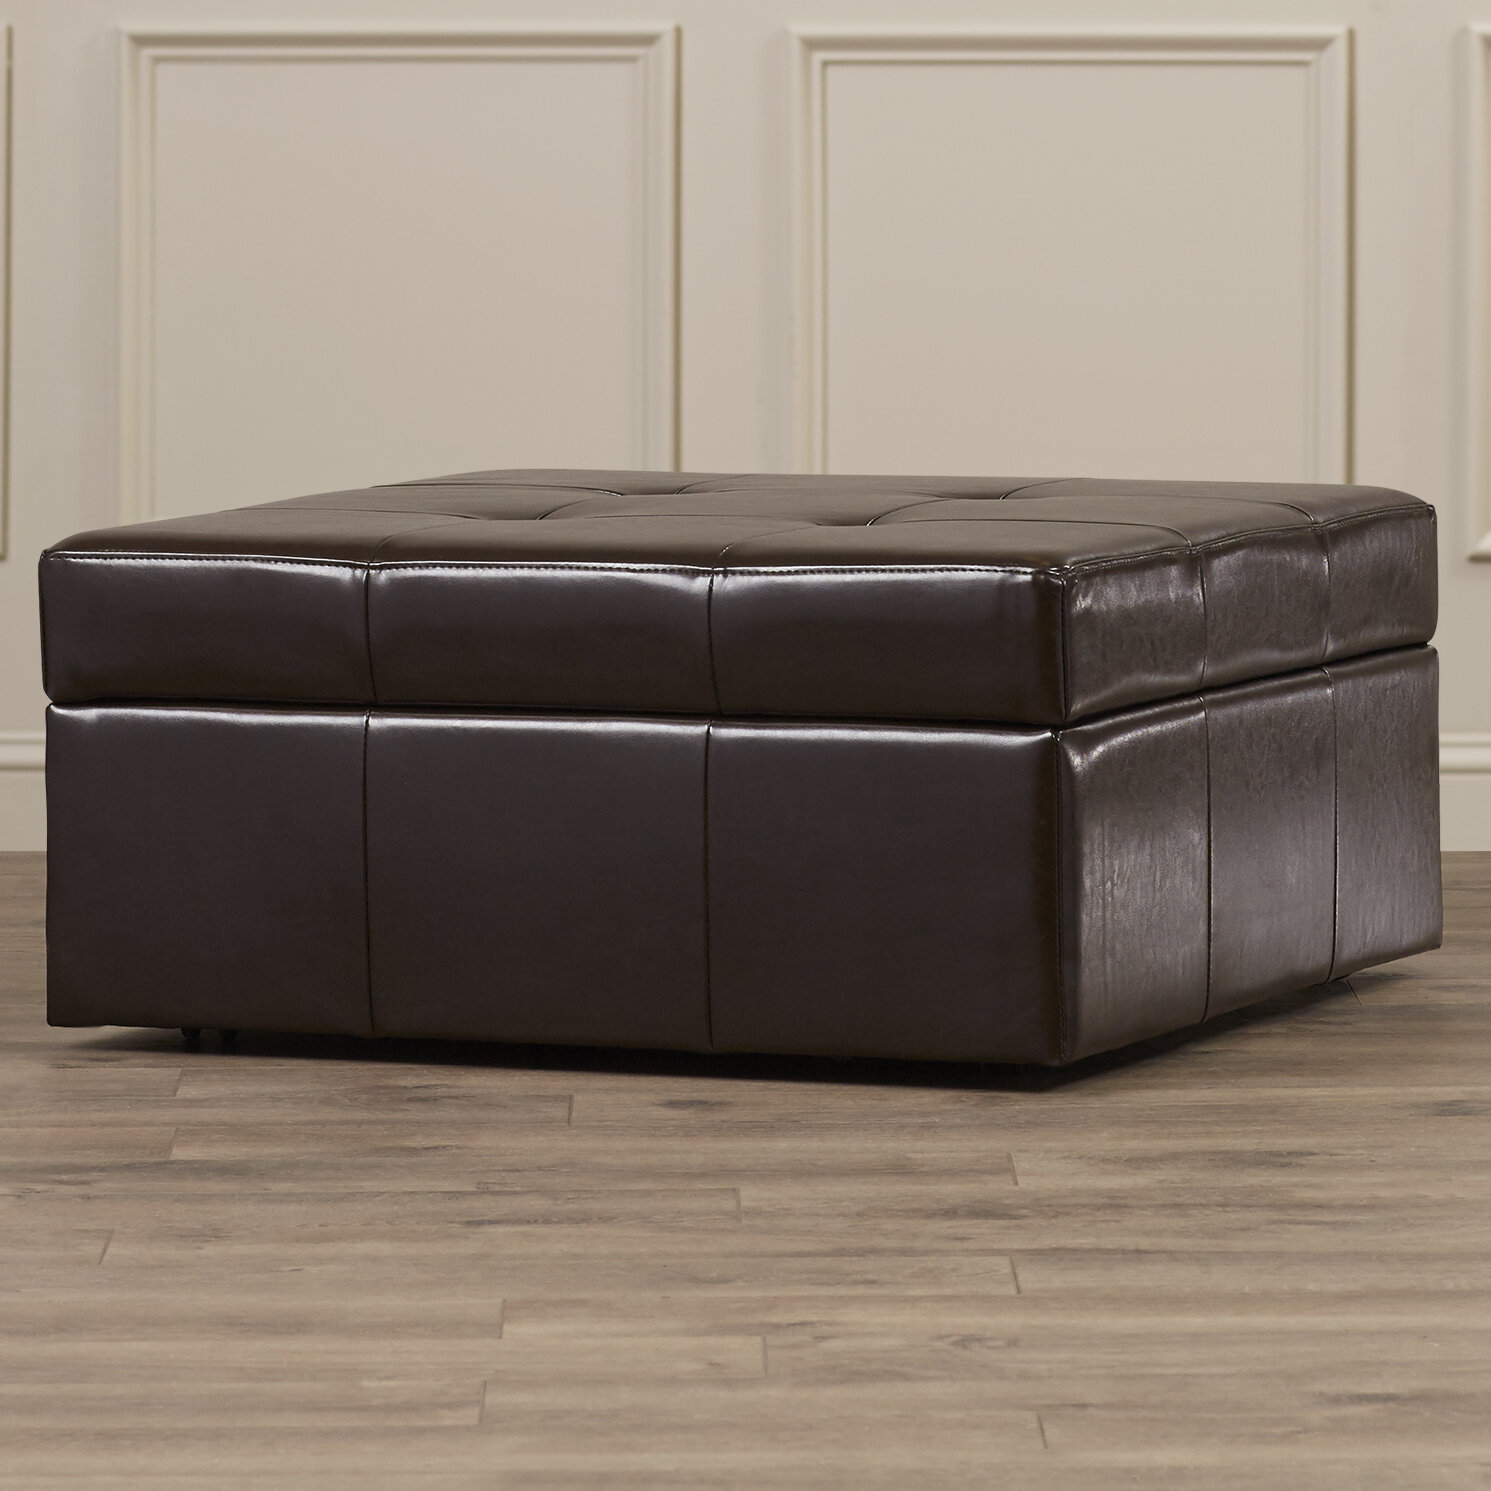 Fantastic Fryth Tufted Storage Ottoman Gmtry Best Dining Table And Chair Ideas Images Gmtryco